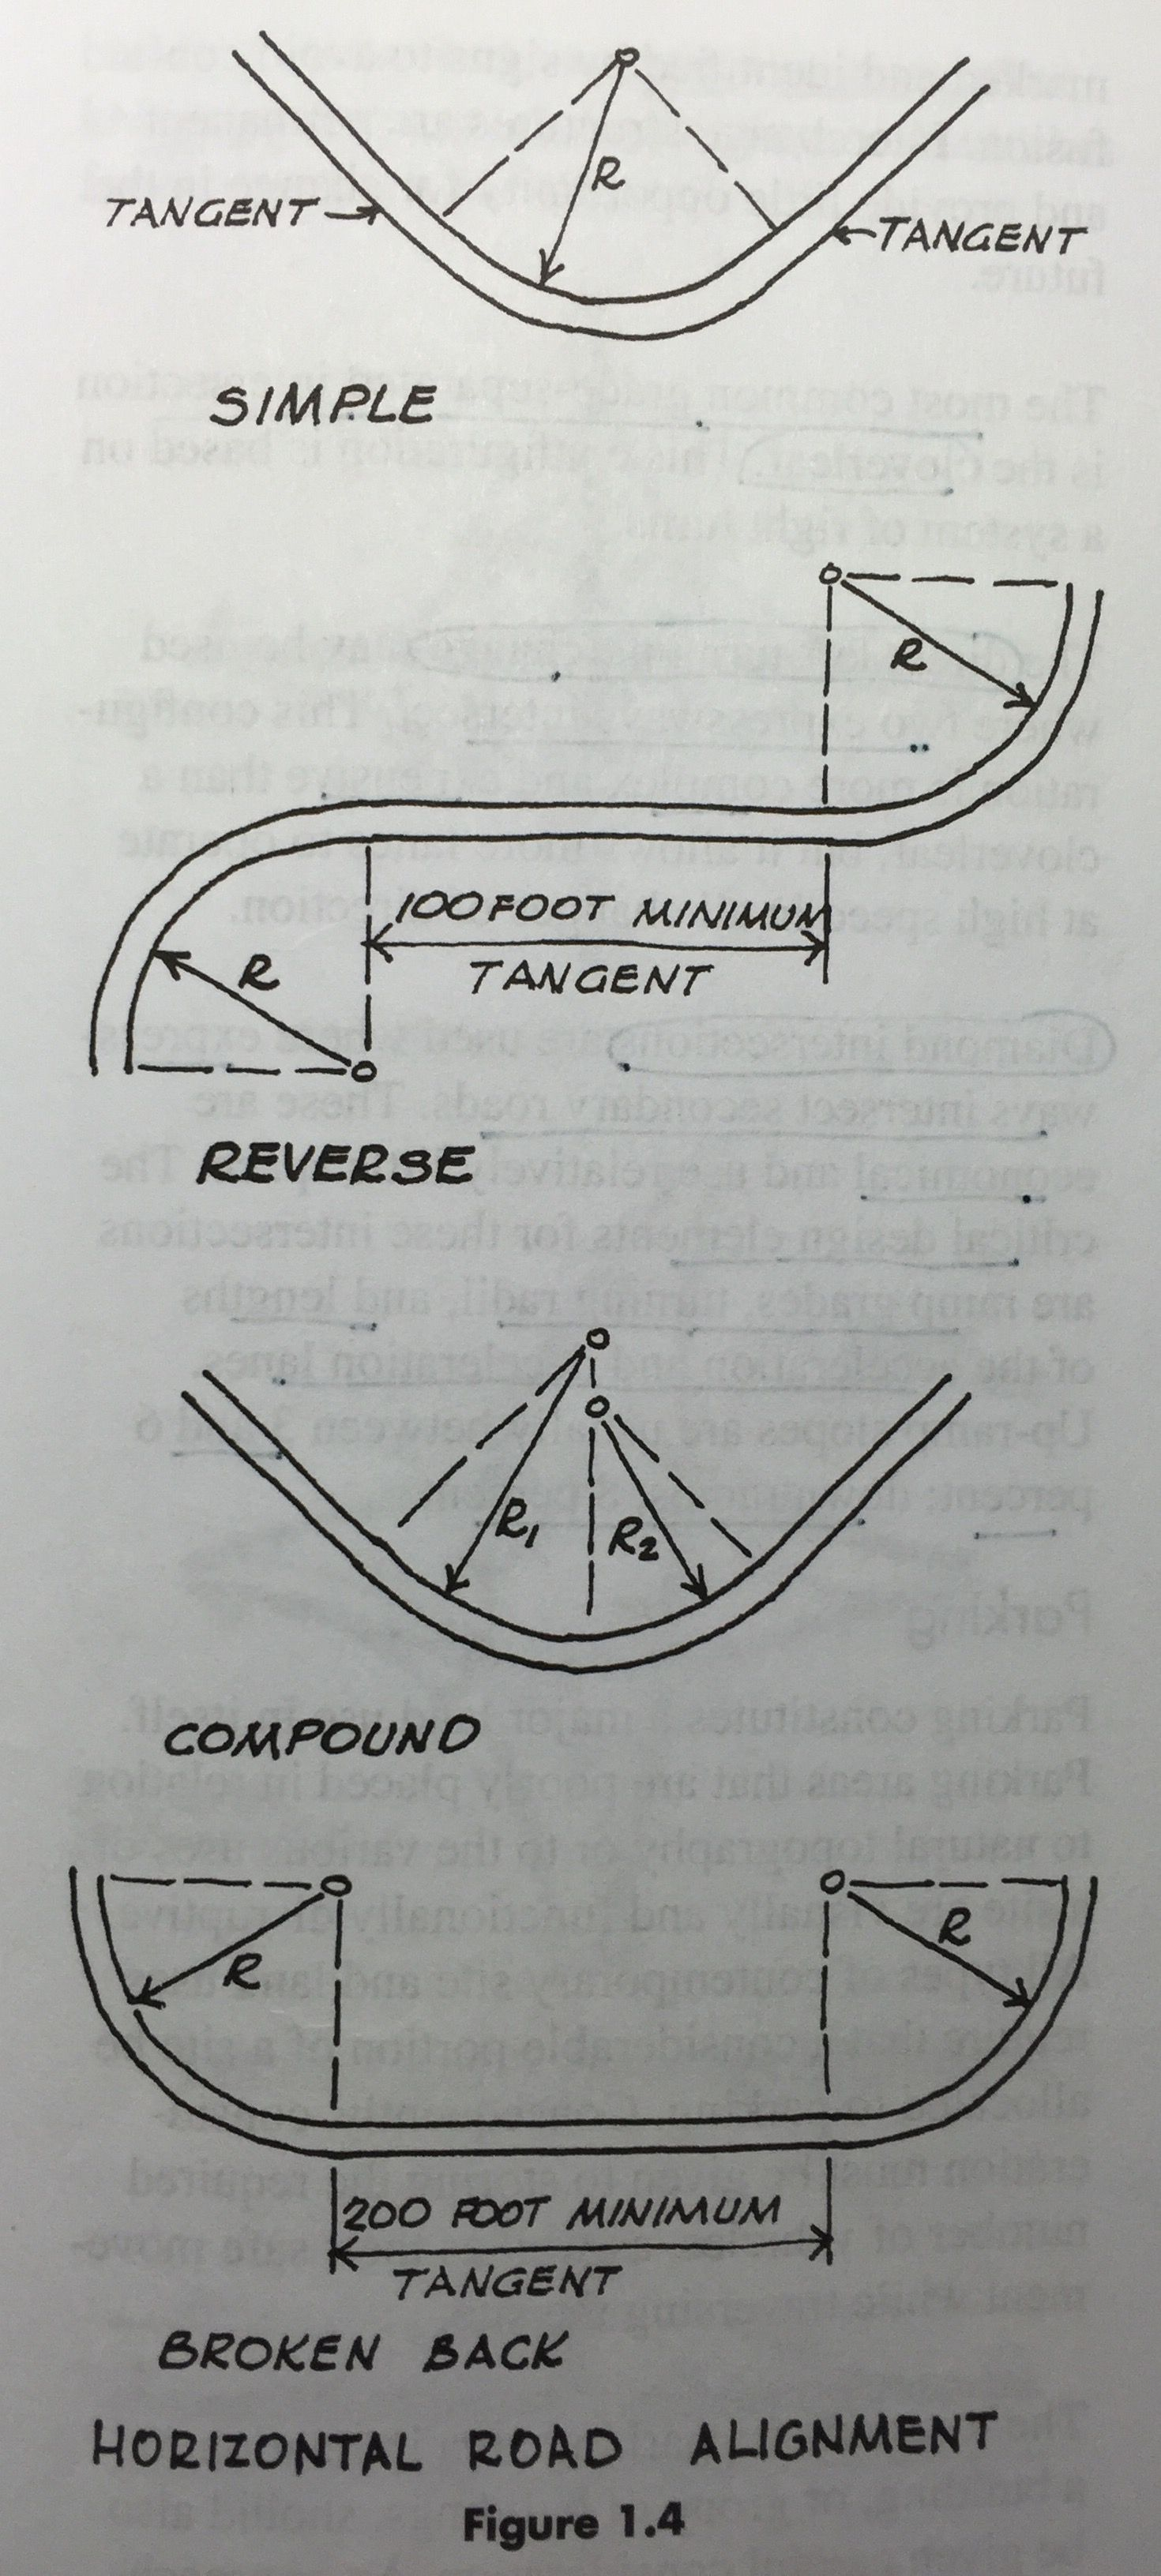 medium resolution of roads consist of tangents straight lines and curves generally arcs of a circle broken back two curves in same direction separated by 200ft tangent